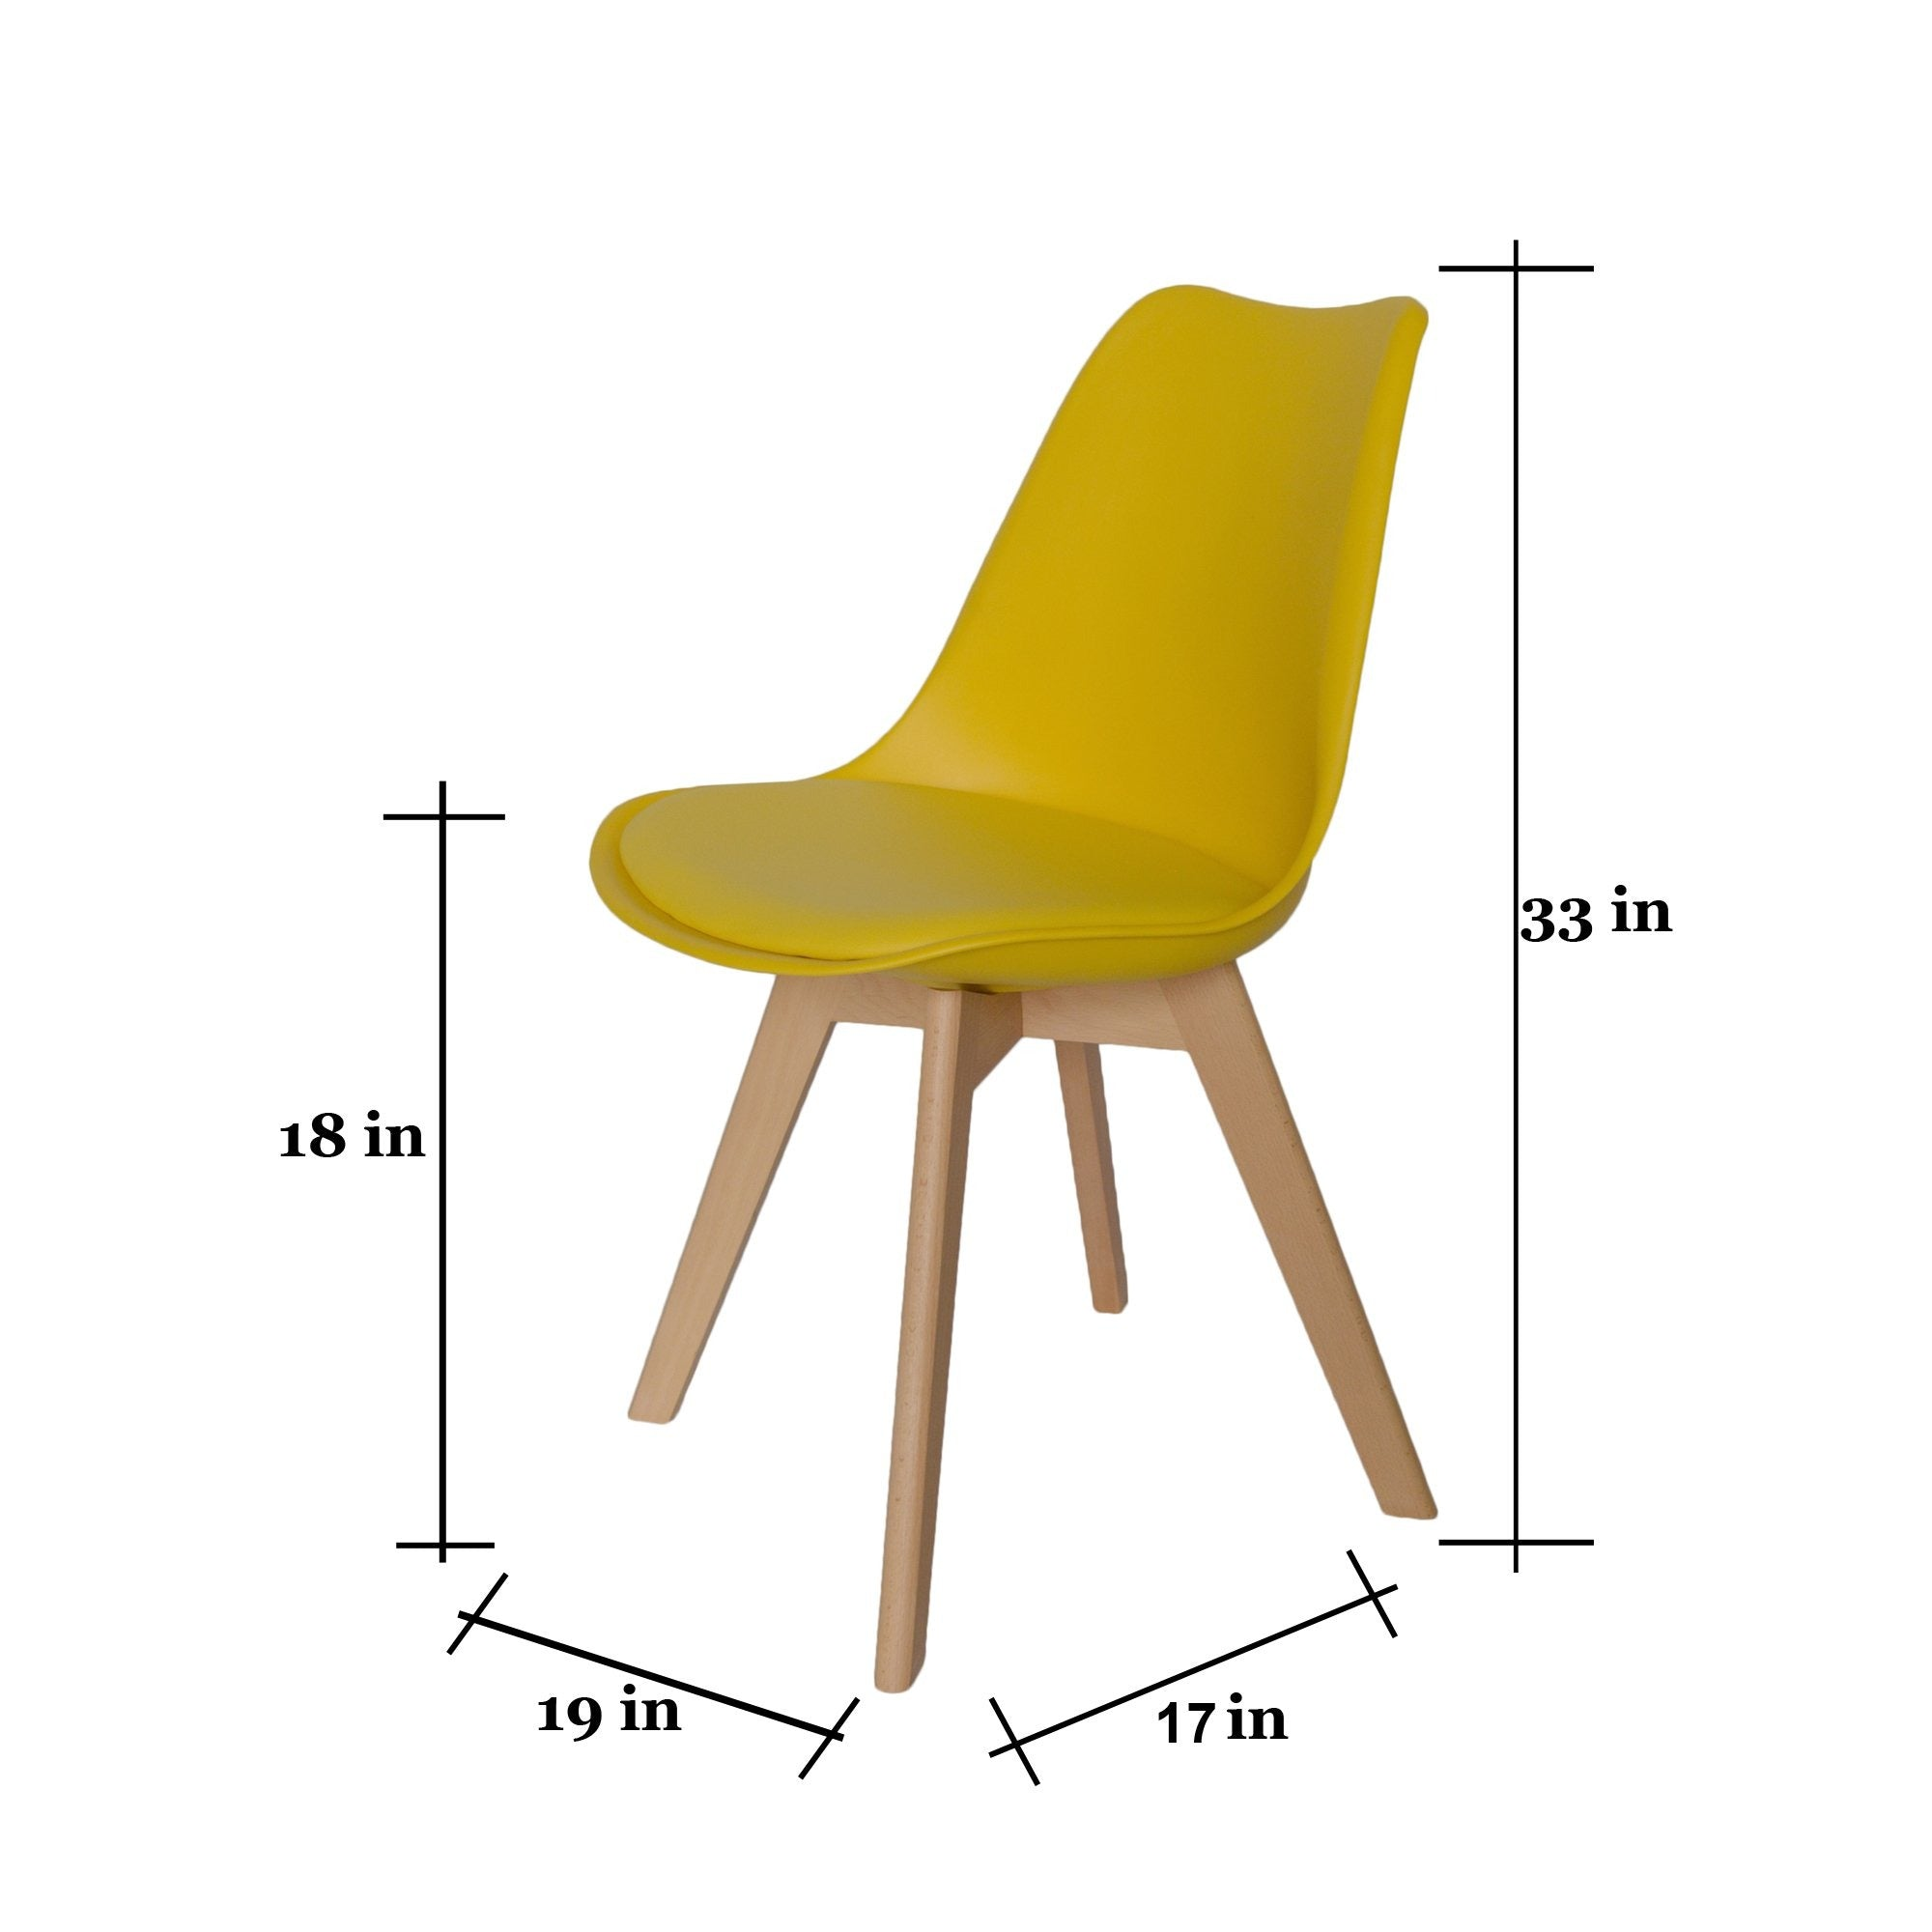 Lemon Chair for the Radiant Shower from Teaktale Home Decors